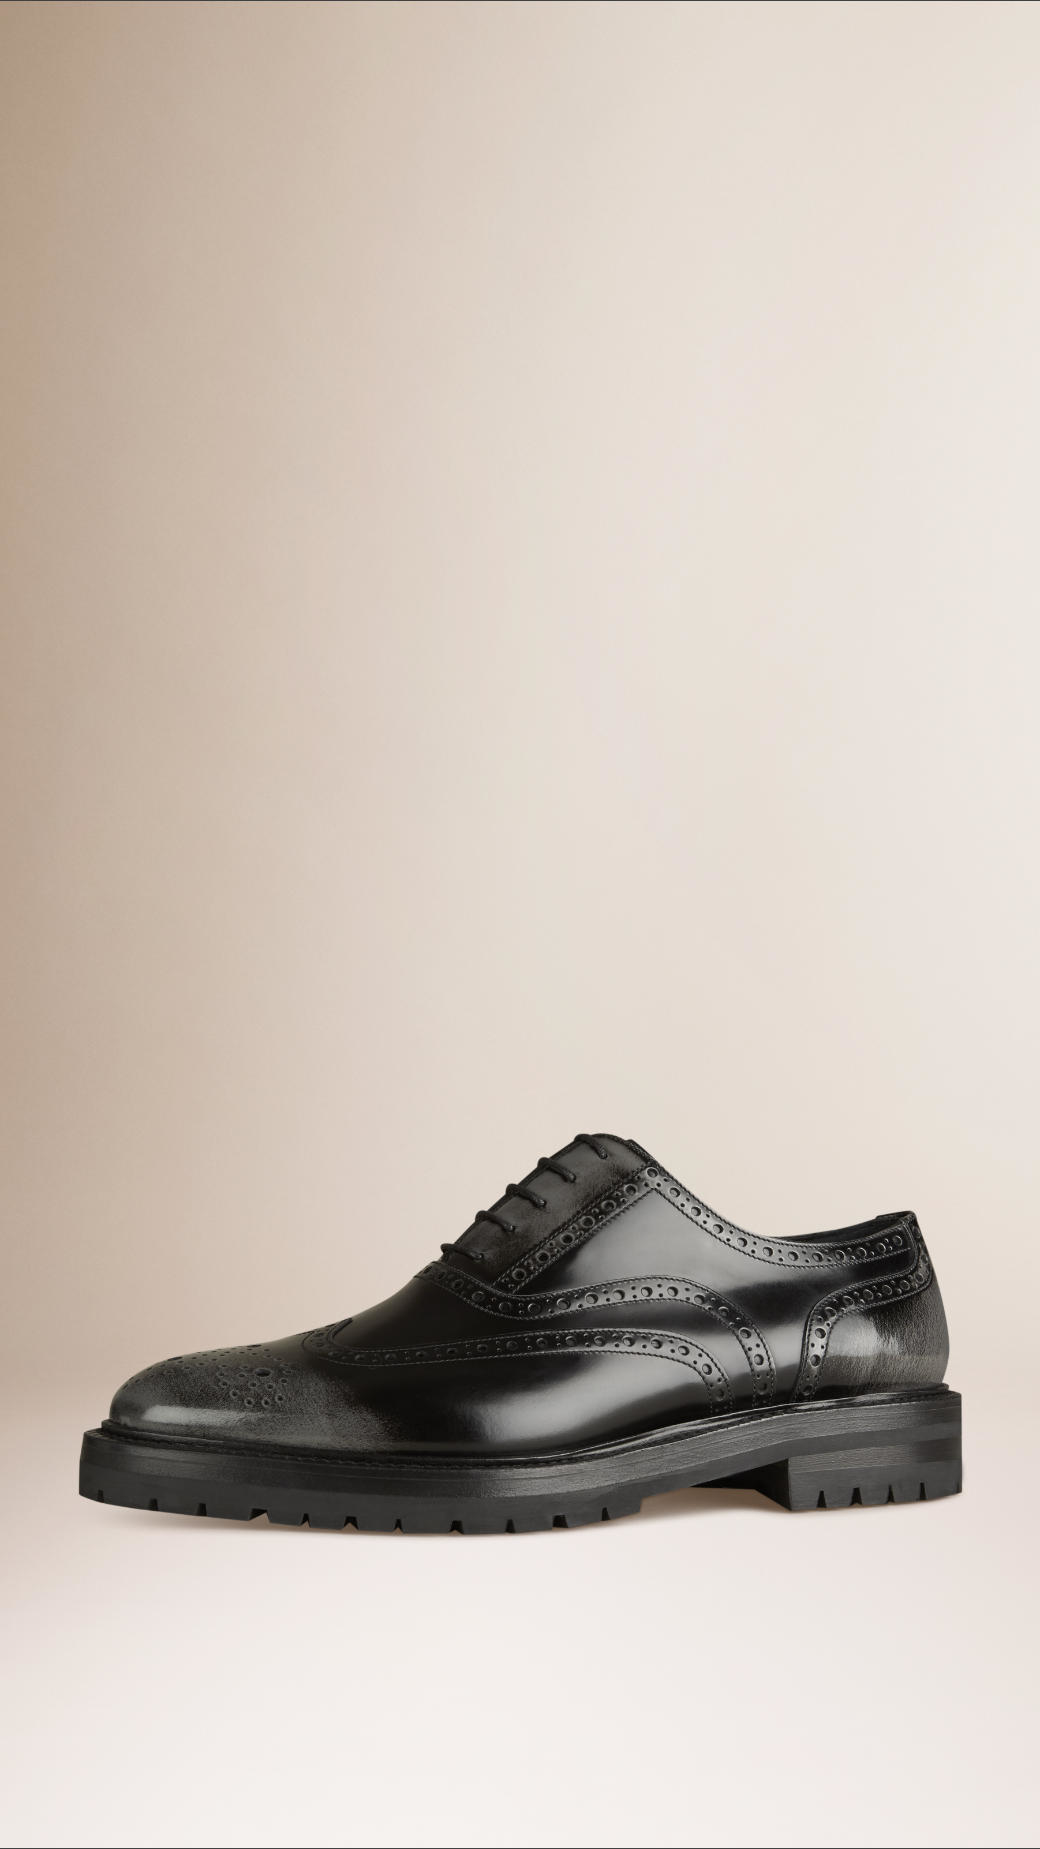 Lyst Burberry Leather Wingtip Brogues With Rubber Sole